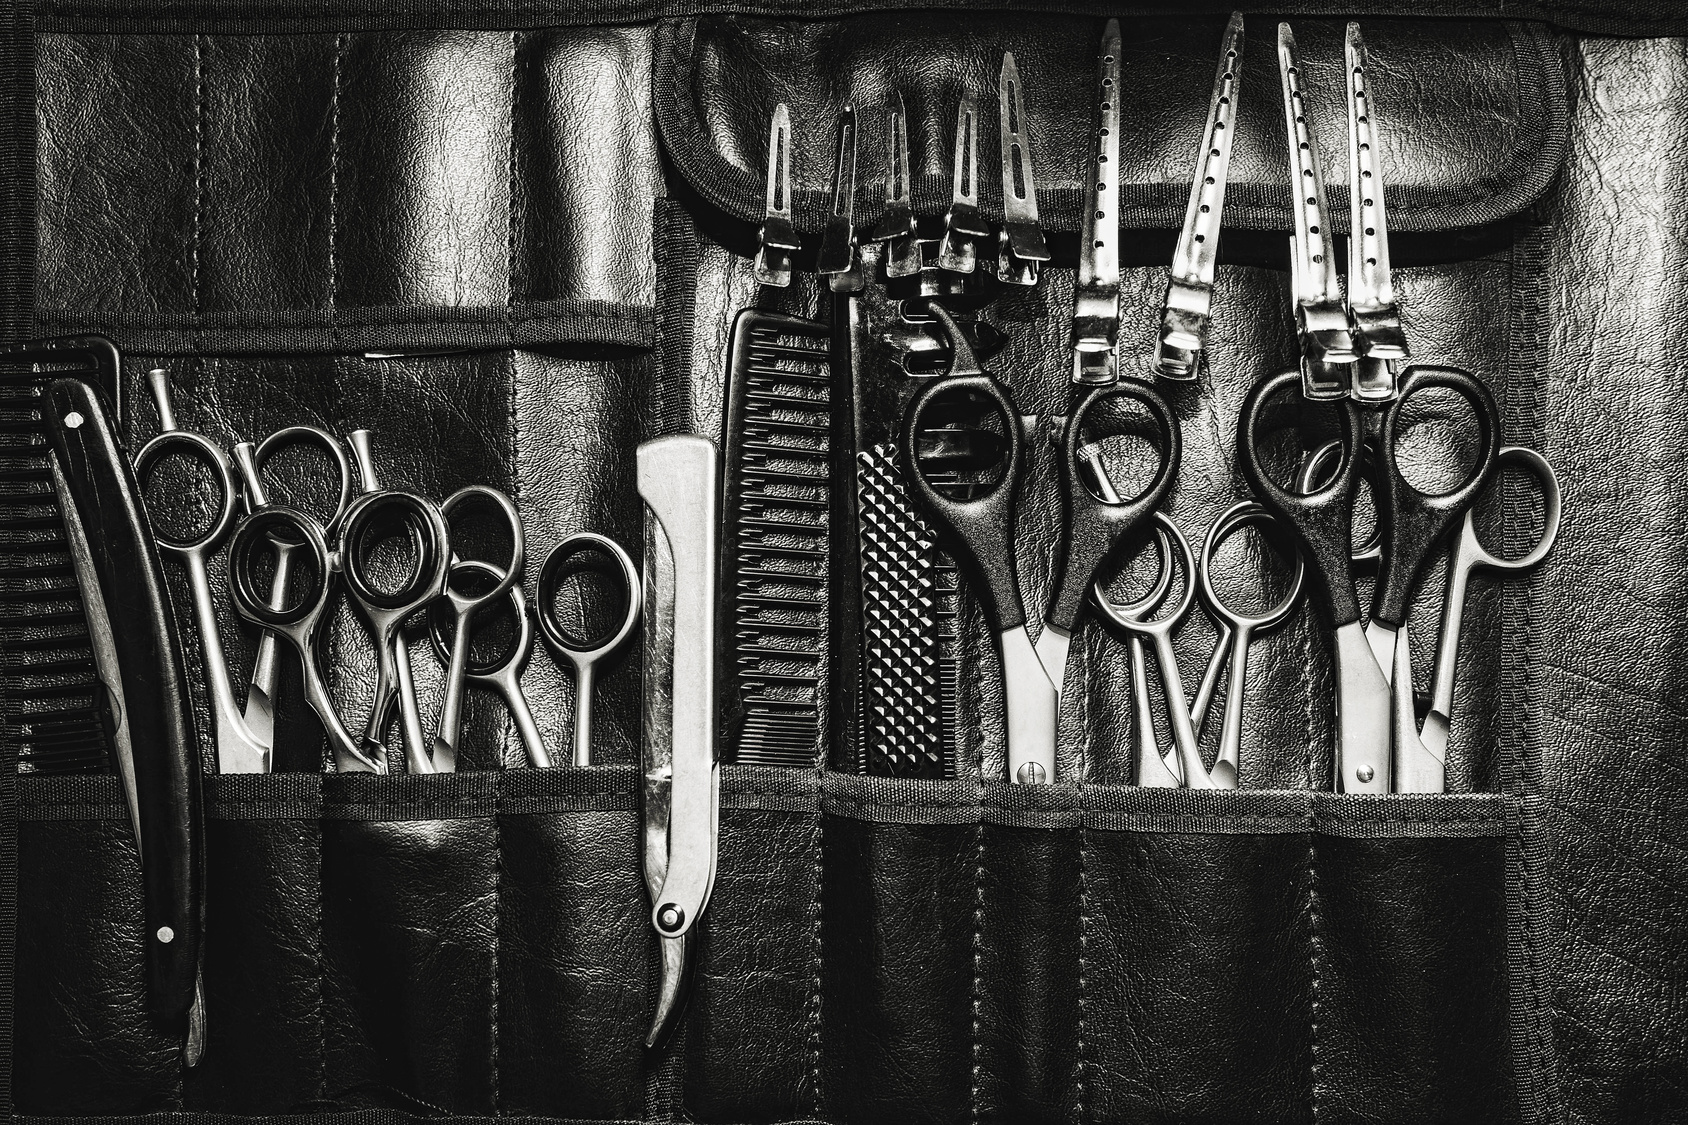 A set of cutting tools for cutting barber beard salon